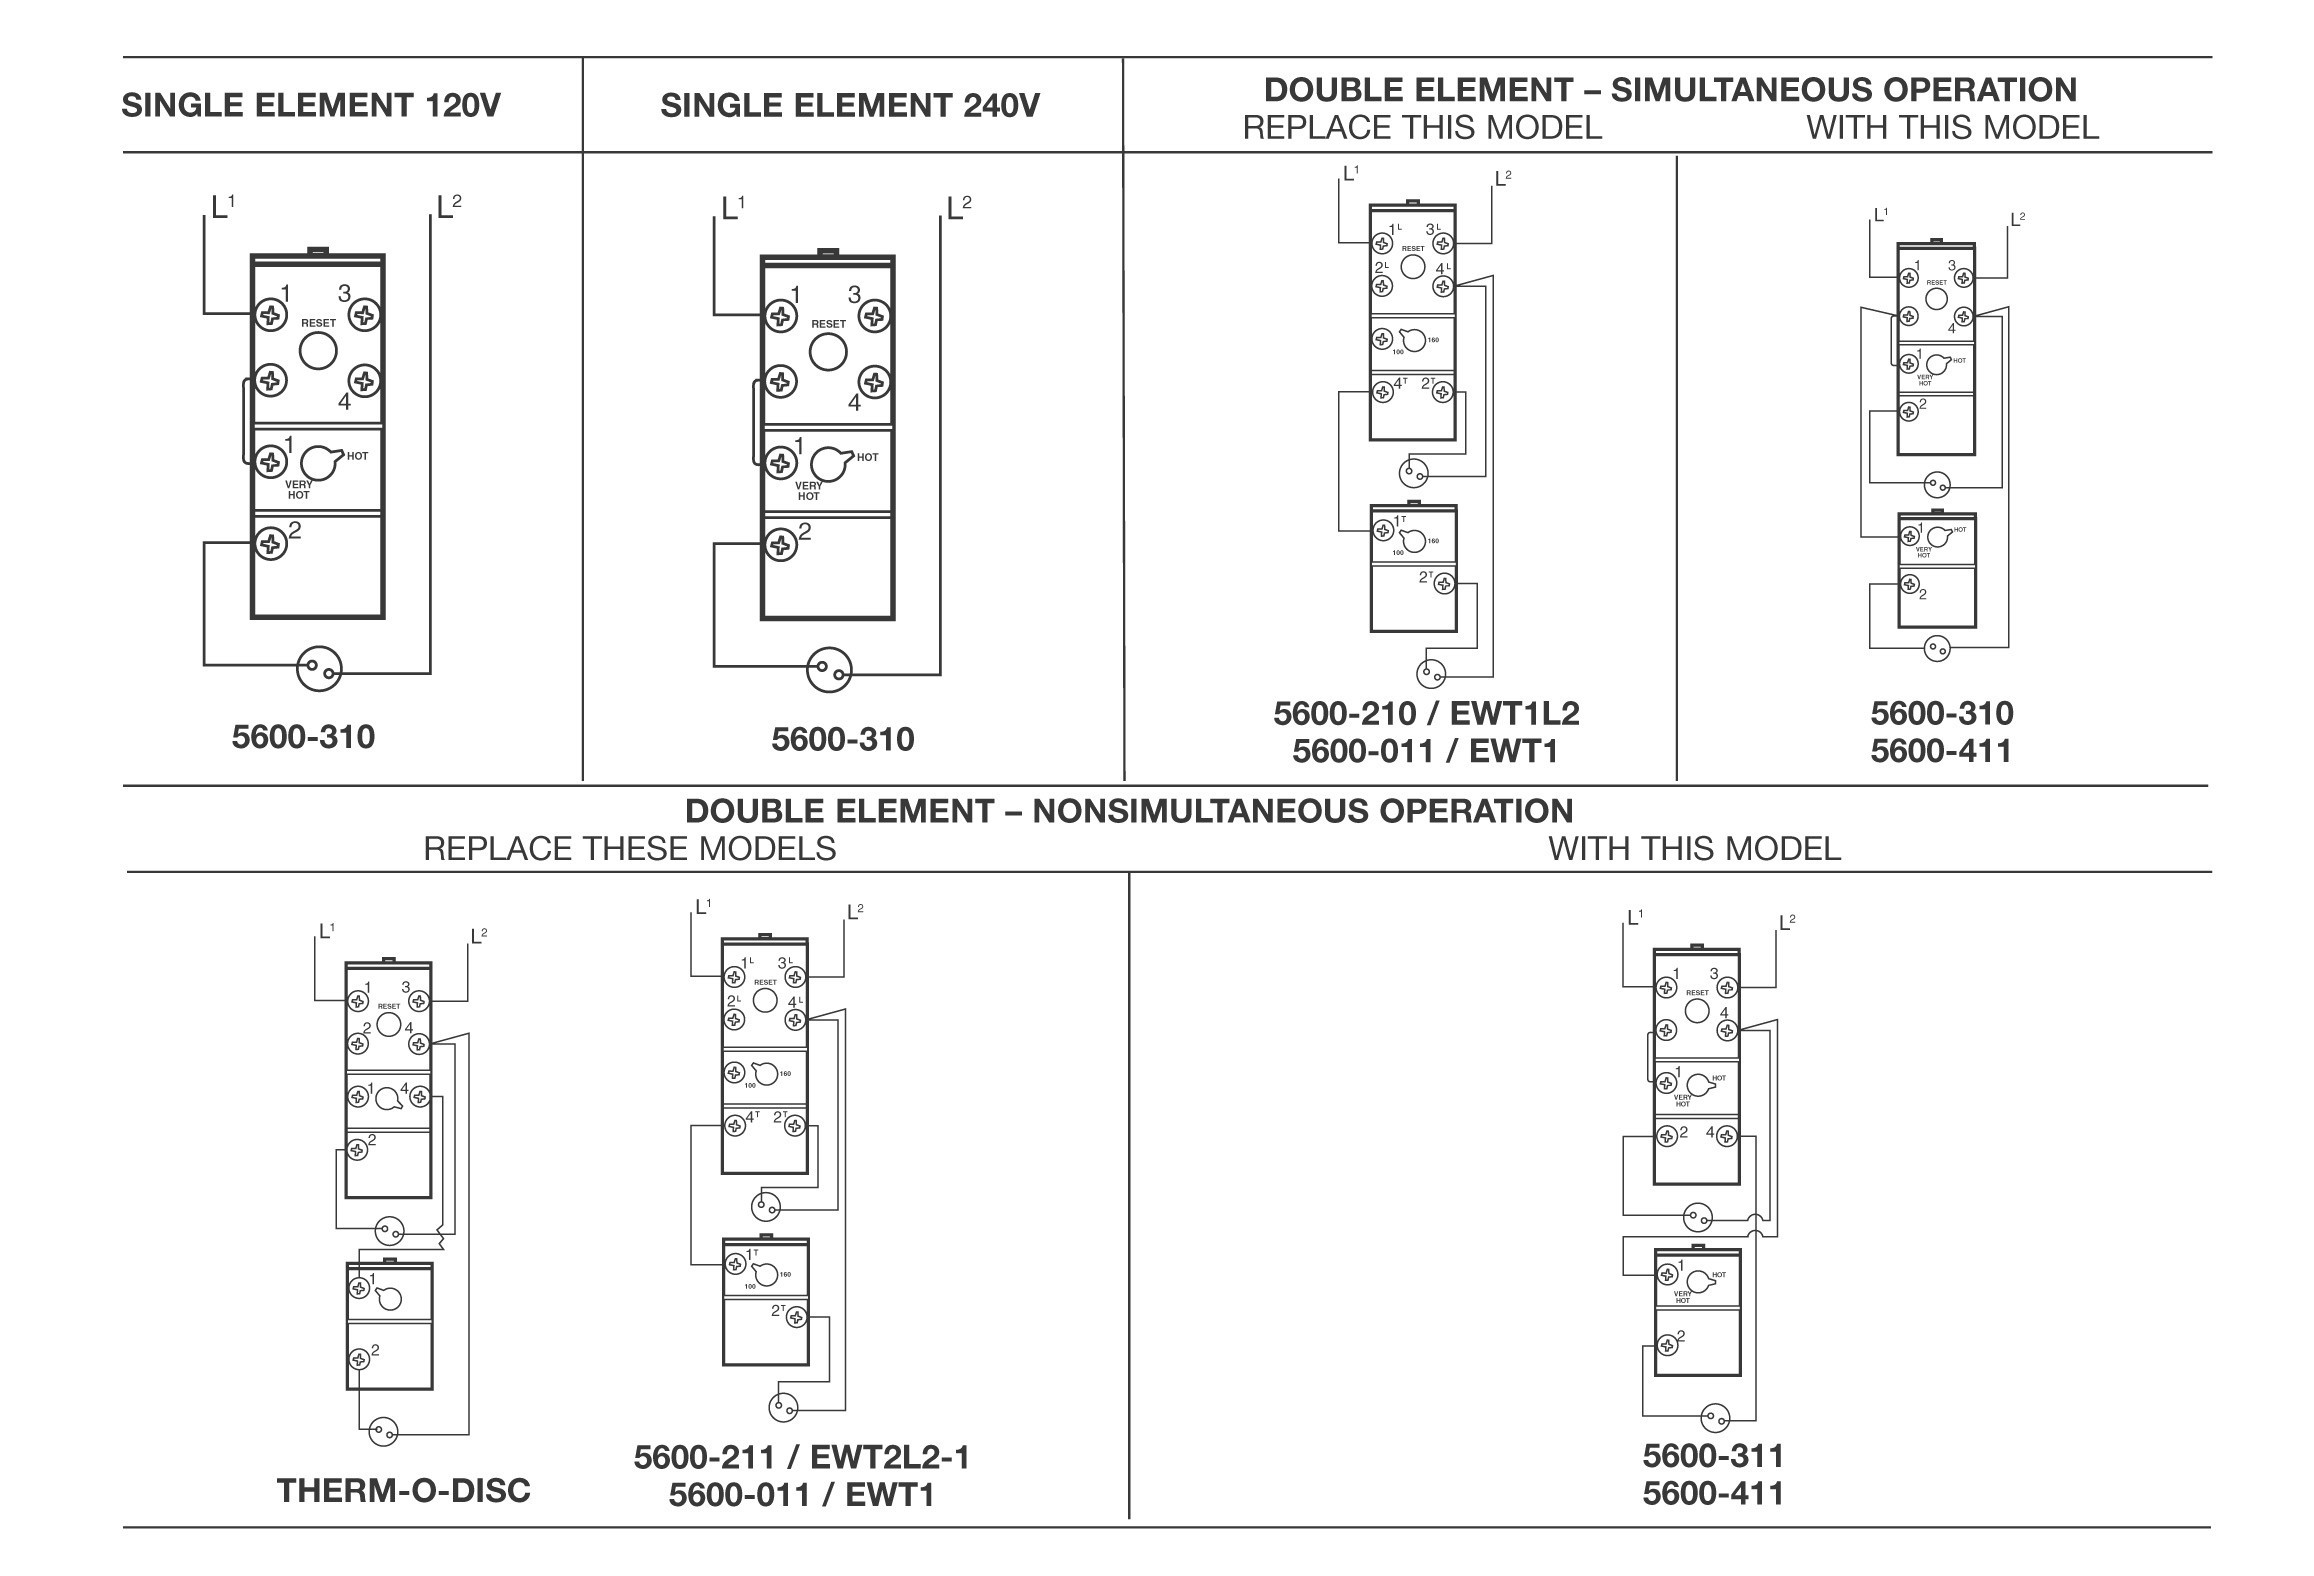 electric baseboard wiring diagram Collection-Wiring Diagram For Electric  Baseboard Heater Fresh Wiring Diagram 220v. DOWNLOAD. Wiring Diagram ...